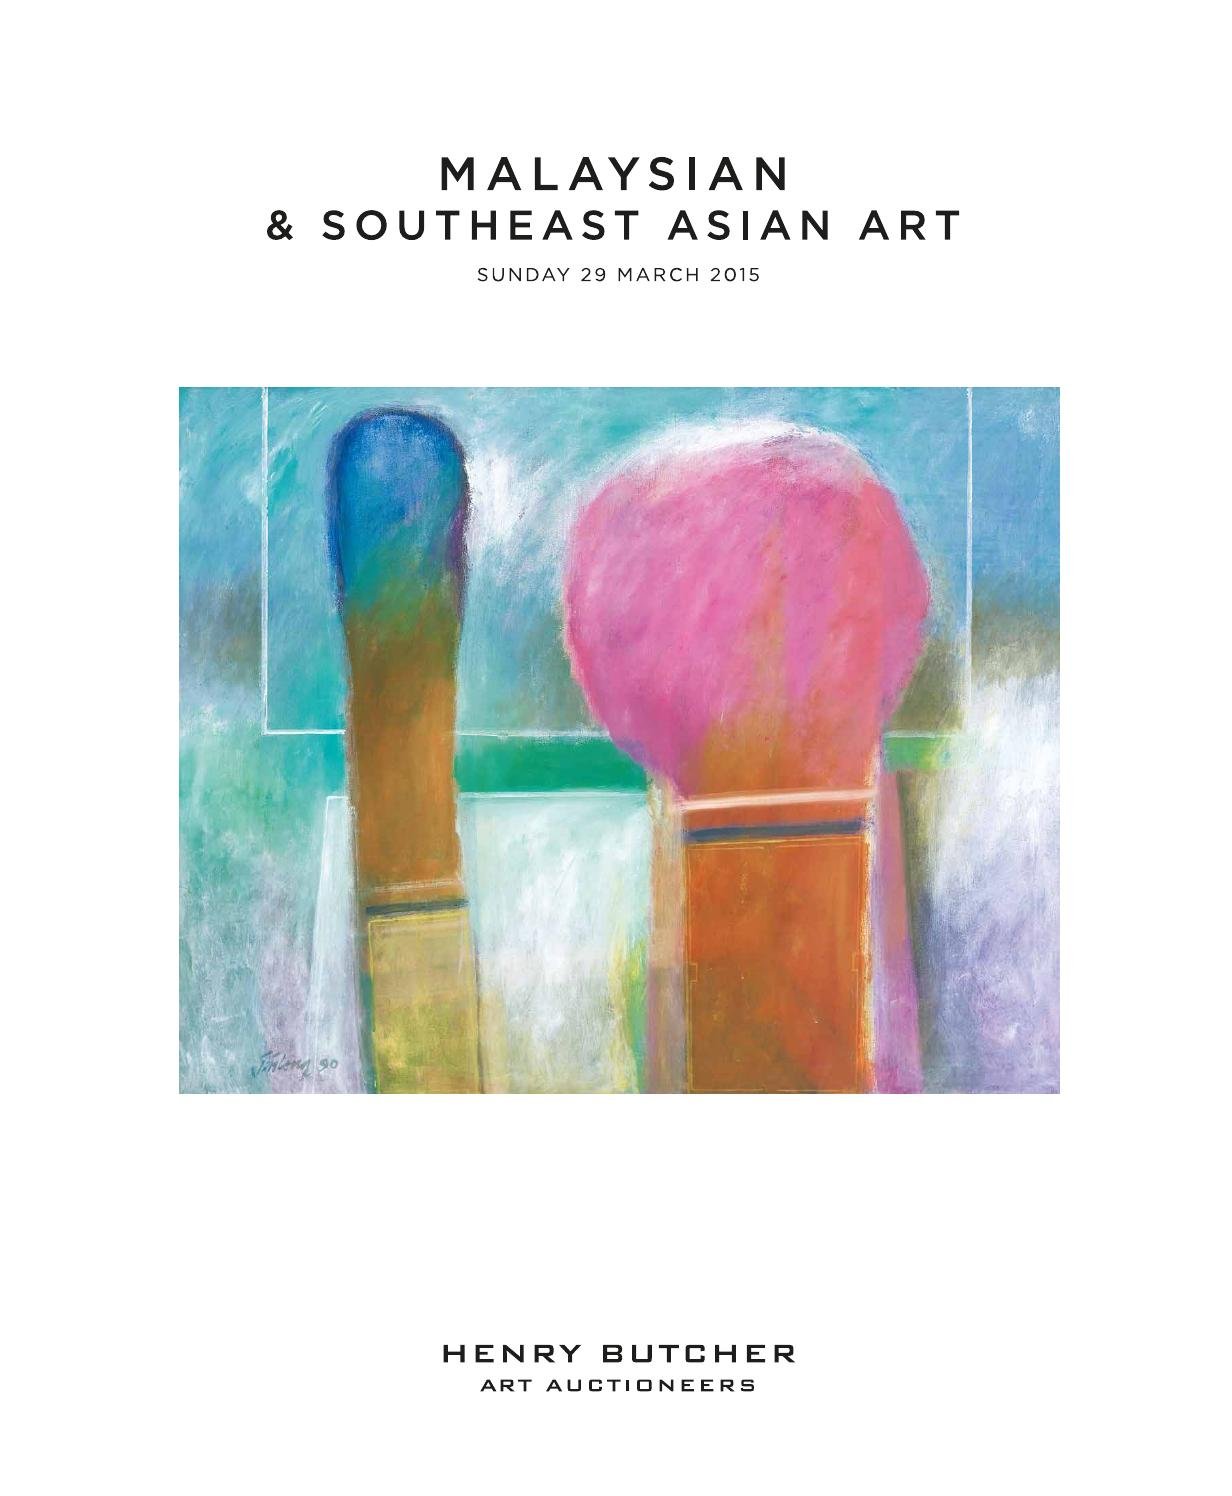 MALAYSIAN & SOUTHEAST ASIAN ART 29 MARCH 2015 By Henry